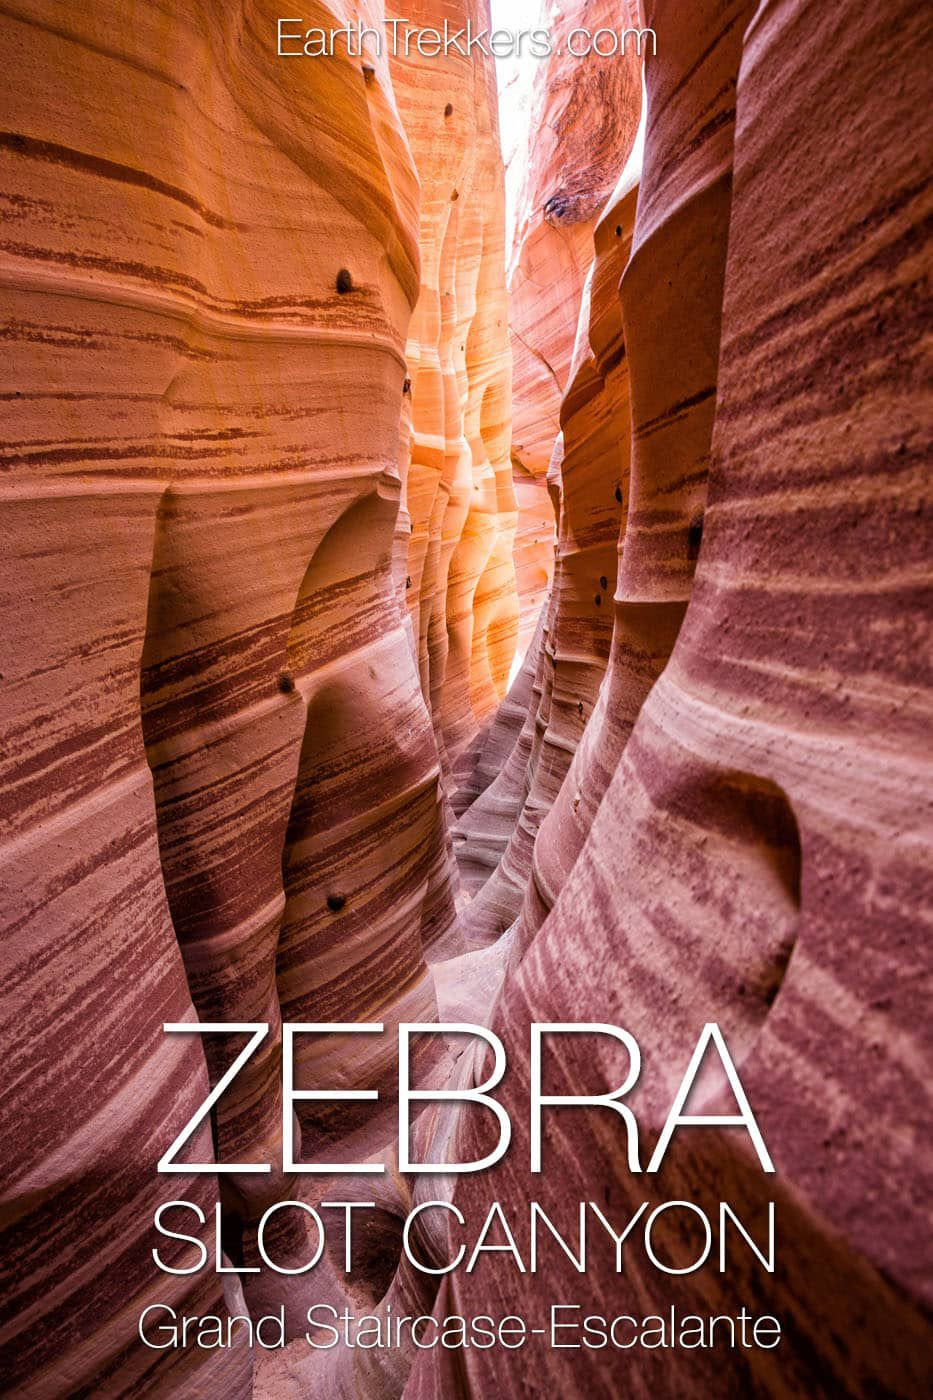 Zebra Slot Canyon Hike